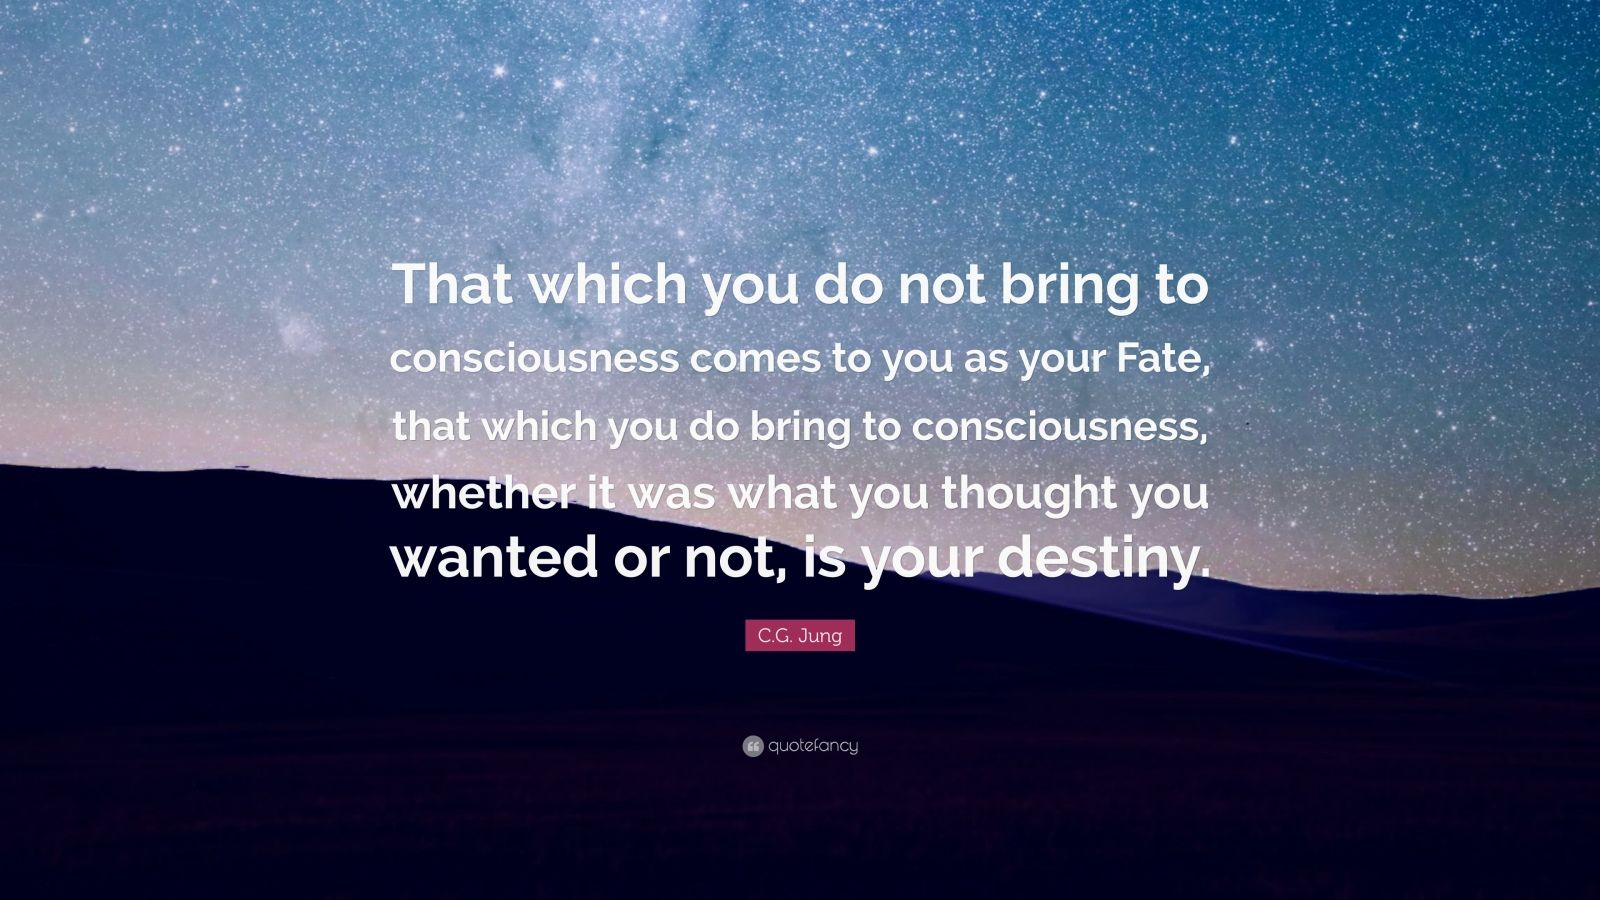 "C.G. Jung Quote: ""That which you do not bring to consciousness comes to you as your Fate, that which you do bring to consciousness, whether it was what you thought you wanted or not, is your destiny."""